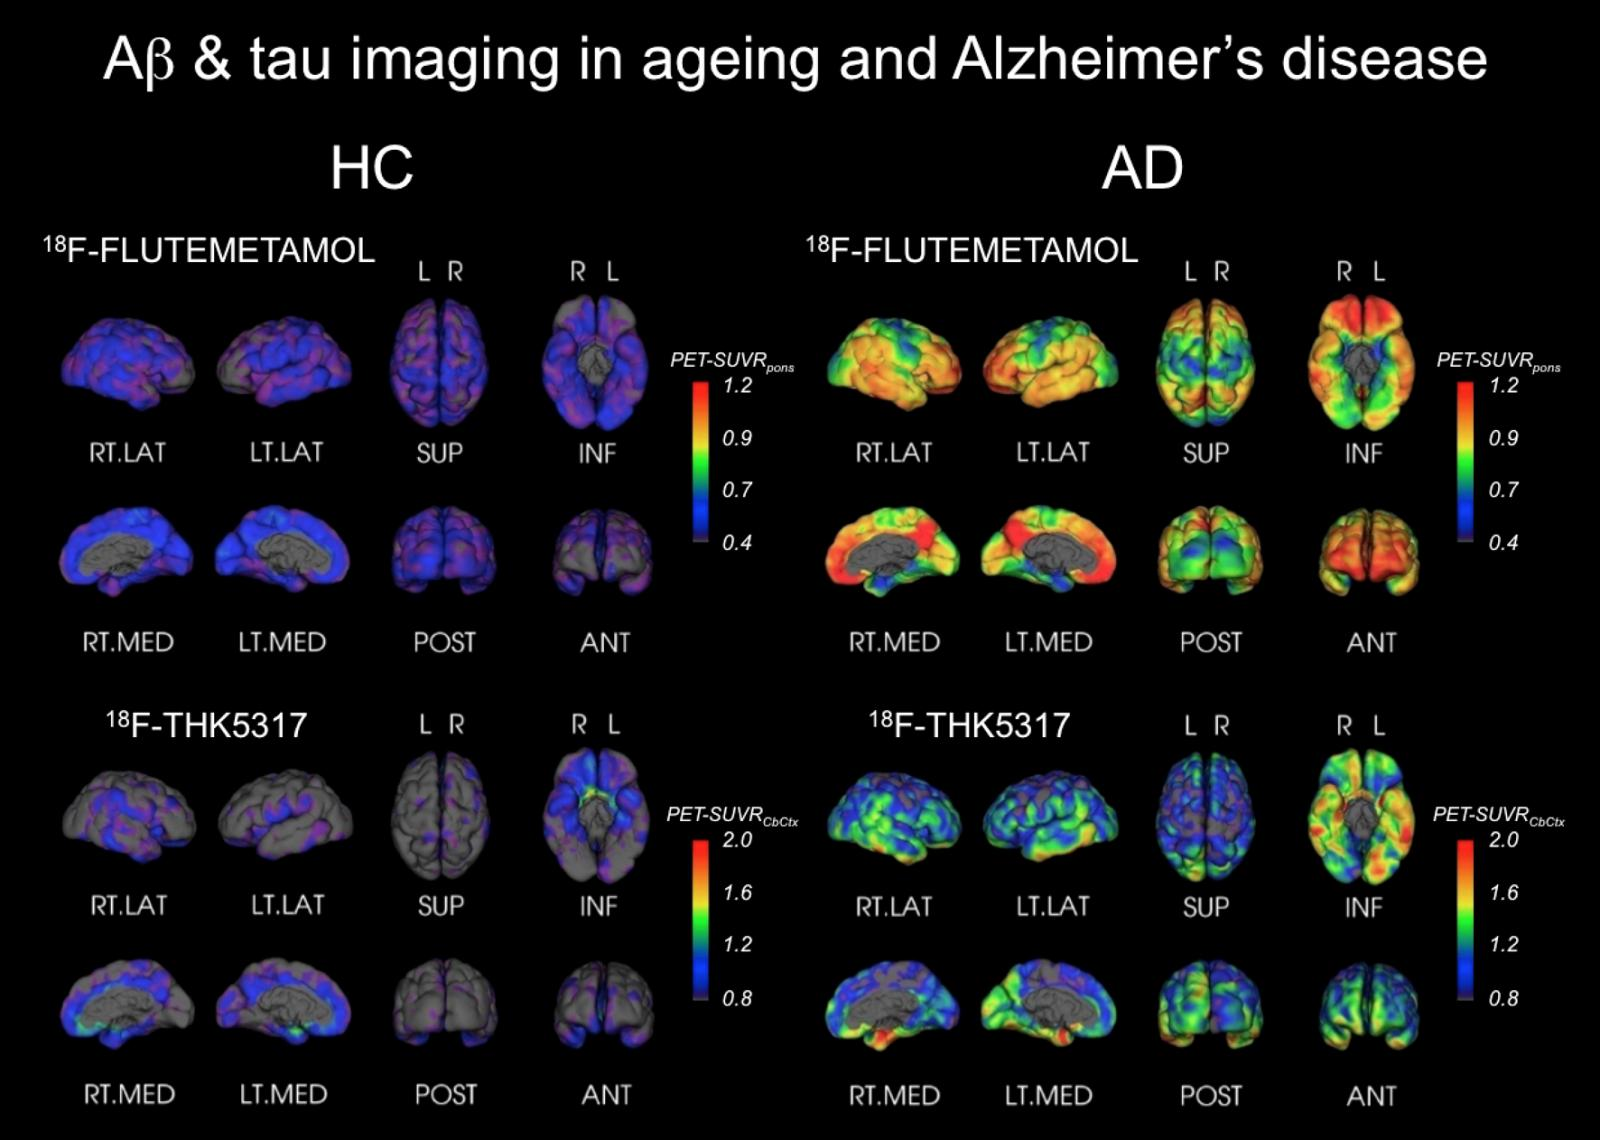 "/><br /> <br /> <em>These images show tau and beta-amyloid PET tracers being used for Alzheimer's research, and were produced by the CSIRO working with Professors Chris Rowe and Victor Villemagne at Austin Health. There are parallels between this approach to brain-disease research and the latest PTSD study, in that specific tracers that bind to abnormal brain matter are being used in conjunction with PET scans. These scans show how the tracers light up abnormal areas of the brain: red is more strongly abnormal, while grey, purple and blue are ""no abnormality"".  HC = healthy control; AD = person with Alzheimer's disease. Flutemetamol is the PET beta-amyloid tracer and THK5317 is the PET tau tracer. Credit: Austin Hospital.</em><br /> <br /> ""The PET tracers that GE has developed enable specialists to study biochemical changes inside the brain that indicate either short- or long-term damage to brain tissue, which may be the beginning of a disease developing,"" explains Dr Tim O'Meara, regional research manager for GE Healthcare Australia and New Zealand. ""The PET tracers are highly specific and enable specialists to look for 'hotspots' in the brain, which previously was only possible post-mortem.<br /> <br /> ""The PET tracers are made by attaching a radioactive tag to a compound that binds specifically to an abnormal target inside the brain. The tracer is given intravenously and moves through the blood where it binds to the abnormal target, and this is captured by the PET scan of the patient's brain. For Alzheimer's disease, the relevant abnormal target is thought to be a protein called beta-amyloid, which misfolds and accumulates in the brain. Beta-amyloid accumulation in the brain is a strong signal that Alzheimer's is developing. For PTSD, phosphorylated tau may be the relevant abnormal target for the tracer.""<br /> <br /> As Miriam Dwyer says, ""we understand the consequences from a psychological perspective of PTSD, but not the specific causes"", which is why this research is so important. ""We know what the symptoms are when you develop PTSD, but the treatments are still not great. The standard treatment is exposure therapy, basically re-exposing the individual to the traumatic memory in a controlled environment, while delivering education, cognitive restructuring and fostering improved coping skills. And that works well in about one-third of patients; doesn't work at all in another third and it can actually have a negative impact for some patients if delivered incorrectly. There aren't any very good drugs in development for PTSD, probably because of the complex combination of emotional, cognitive, behavioural and biological symptoms. We're still really trying to understand how we can effectively engage and treat all sufferers—not just one-third. We're working with the veteran community and the ADF to identify those at risk of developing mental-health issues or readjustment issues. And along with that, we are studying the genetics, epigenetics and biomarkers to see if there's an objective clinical way of identifying those at risk, as well as taking a holistic approach to the diagnosis and treatment.""<br /> <br /> Luke Ross believes all this research will be a game-changer for Army psychologists. In the meantime, he's focused on looking out for servicemen and women every step of the way. ""I'm incredibly proud of the service that our soldiers give,"" he says. ""I've been really, really happy over the past 20 years to see the difference in how the Army treats those with psychological distress. We've got much better at looking after our Diggers—and the first job of every officer is to look after your Diggers.""<br /> <br /> <em>All PET brain scan images in this story, including the feature image on the home page, relate to Alzheimer's research.</em>               </section>                                                           <h6 class="